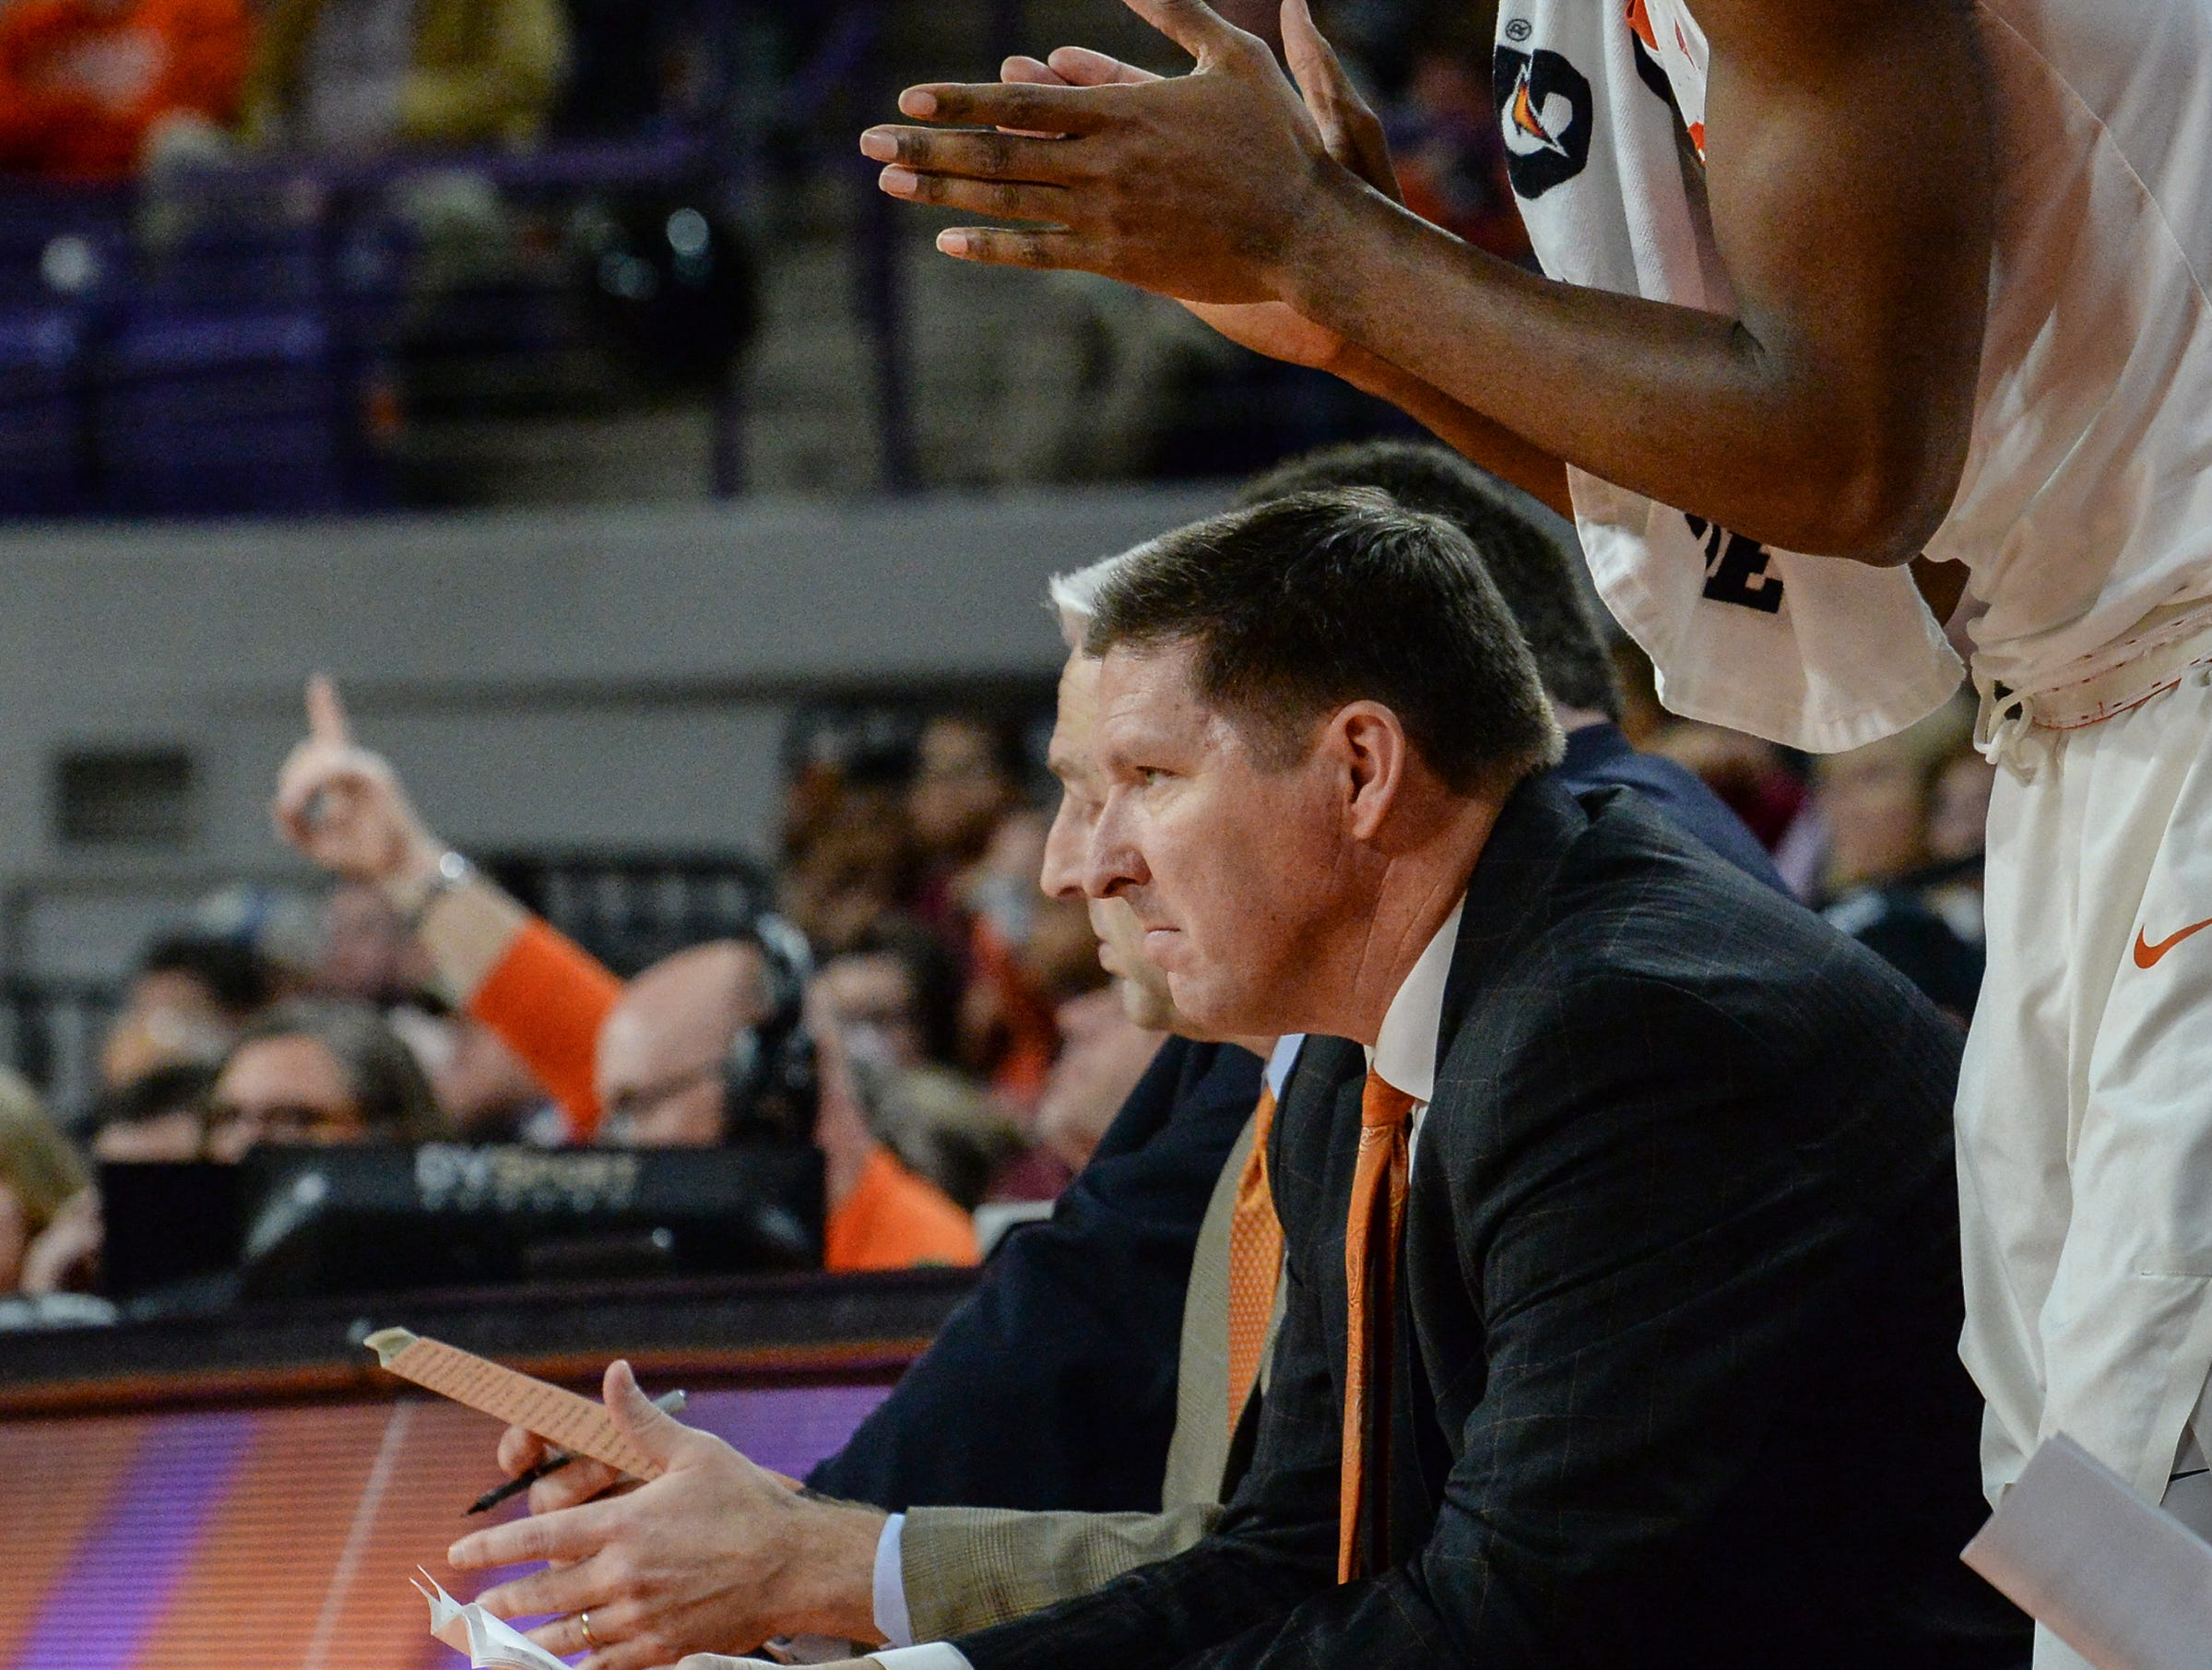 Clemson head coach Brad Brownell watches his team play Florida State during the second half at Littlejohn Coliseum in Clemson Tuesday, February 19, 2019.